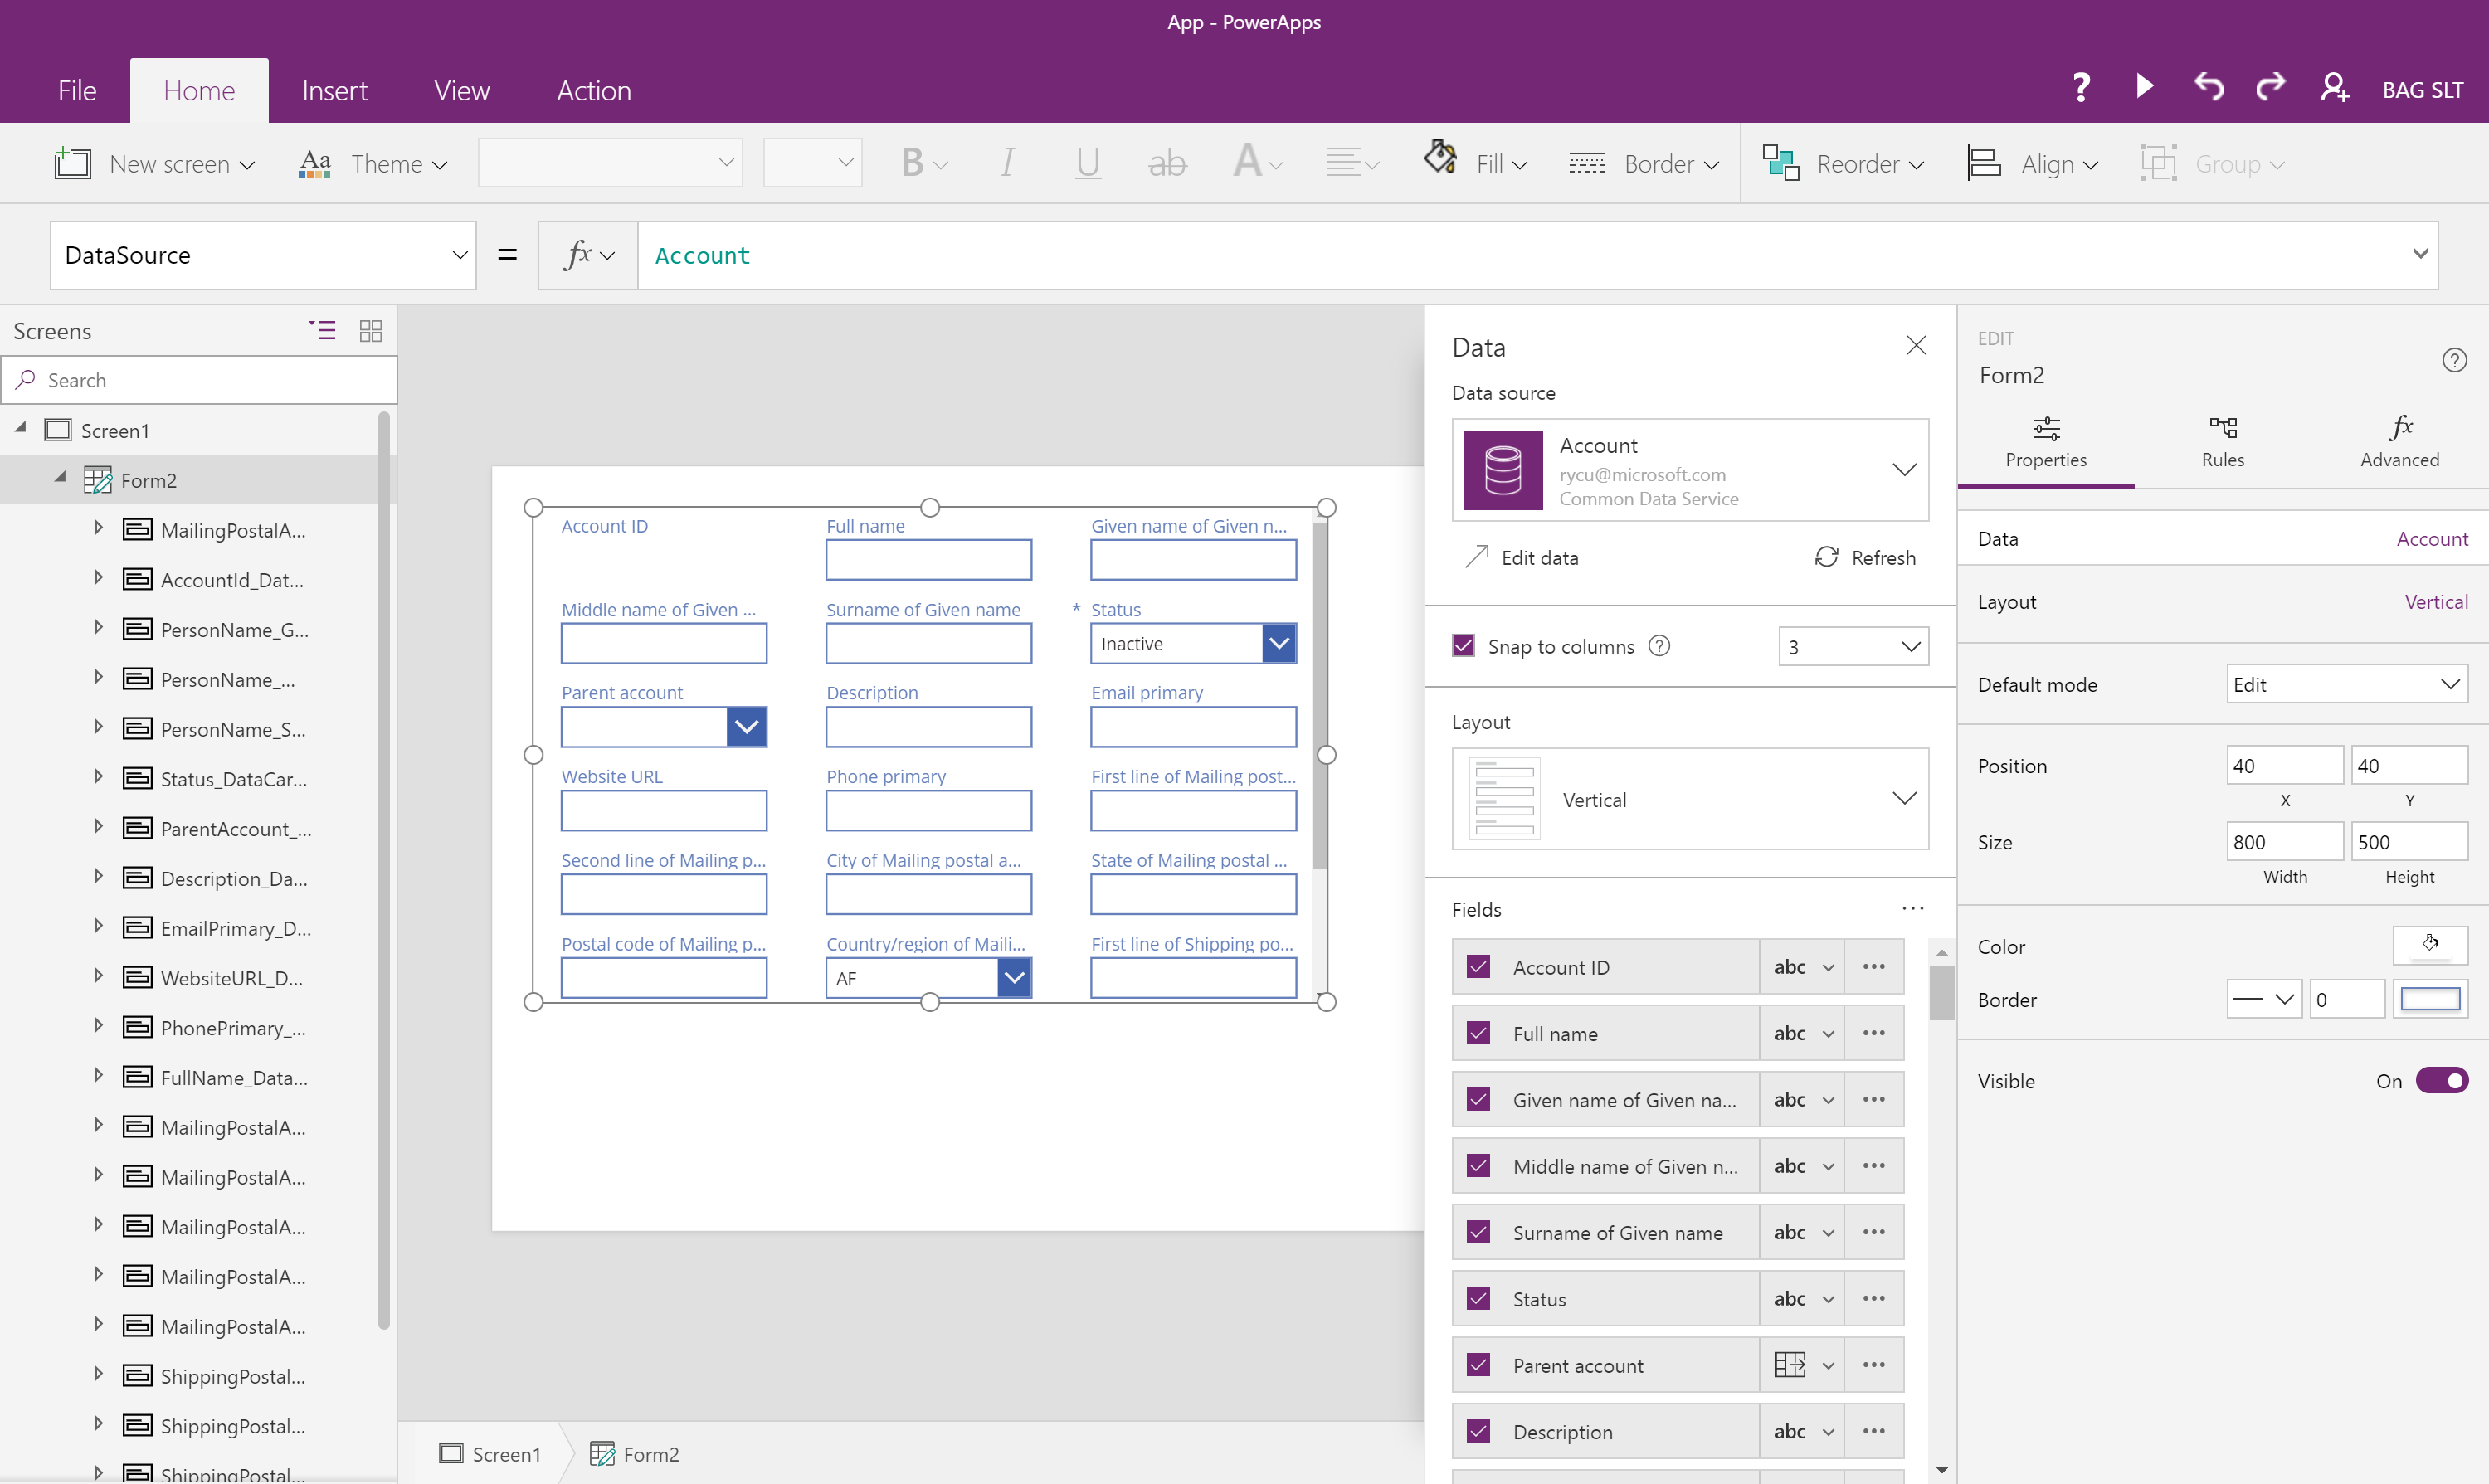 New on PowerApps: easily create rules, configure forms and galleries